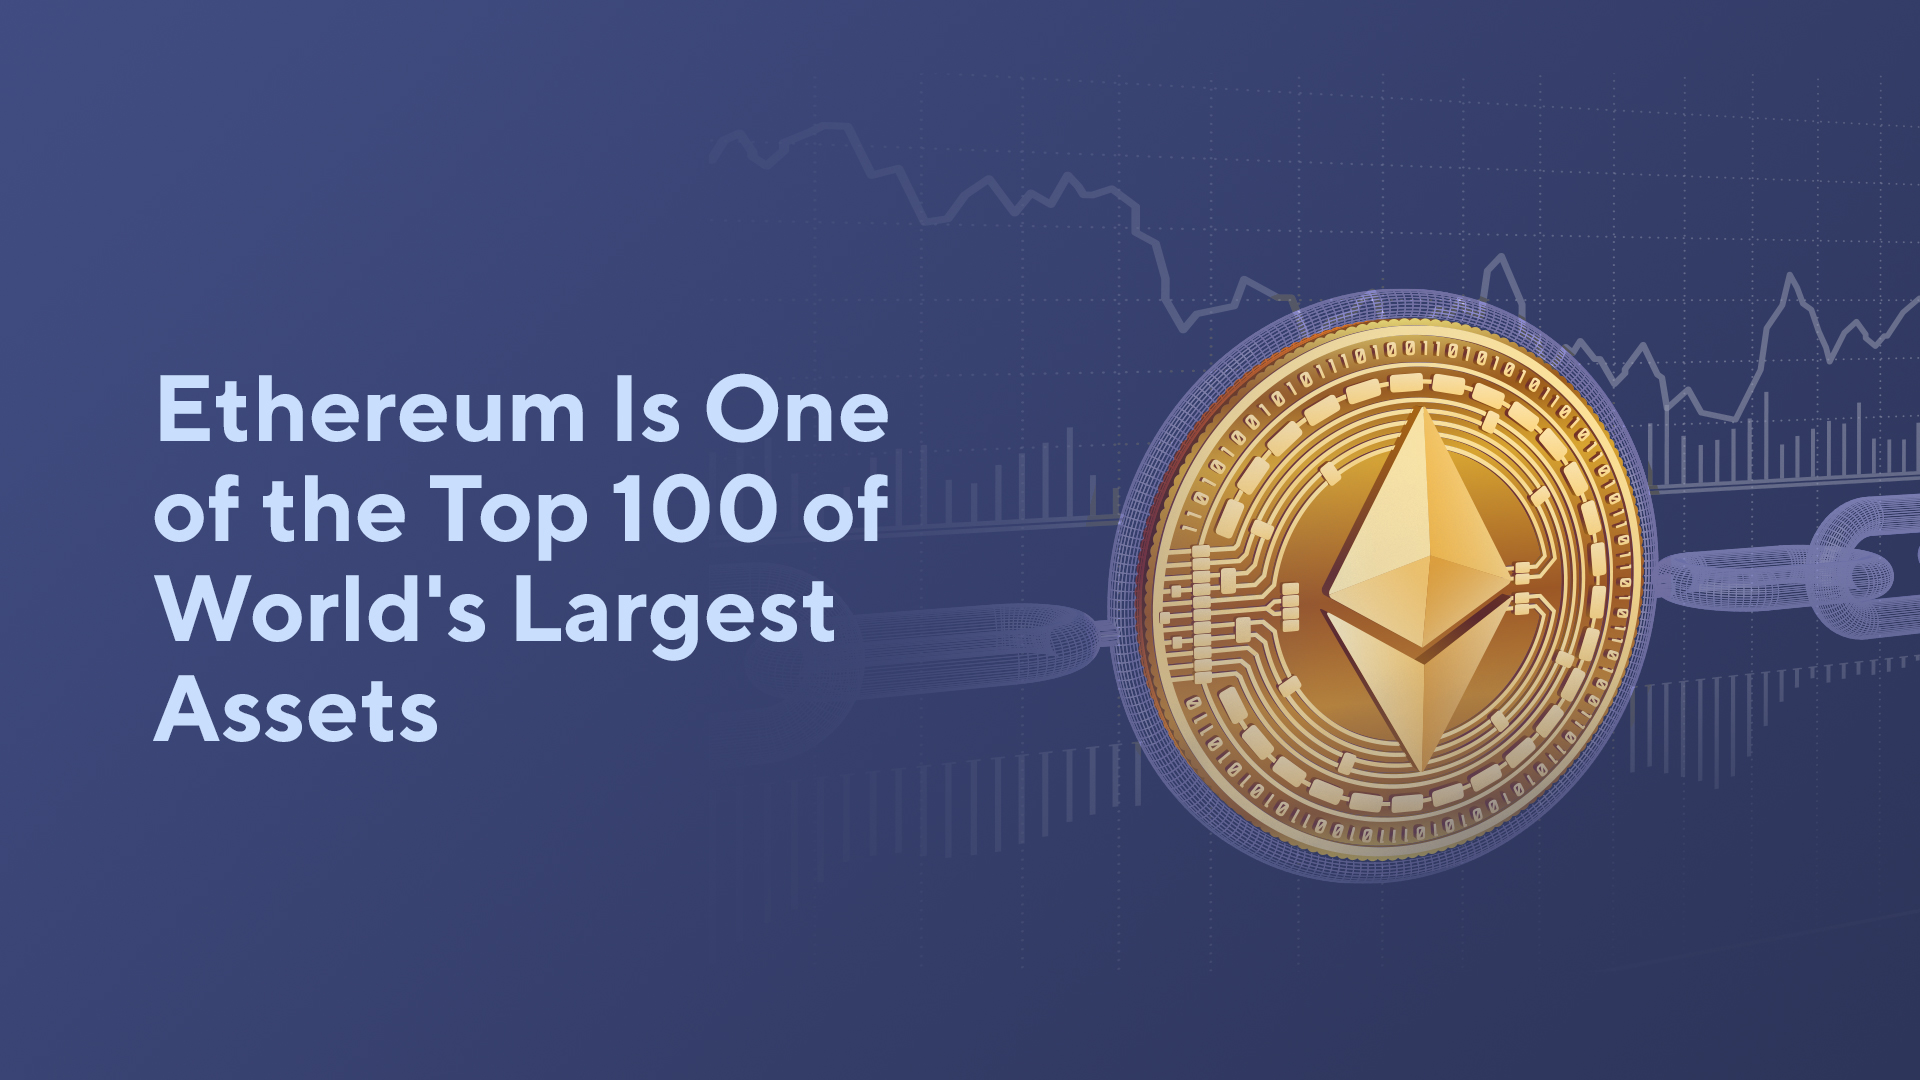 Ethereum Is One of the Top 100 of World's Largest Assets